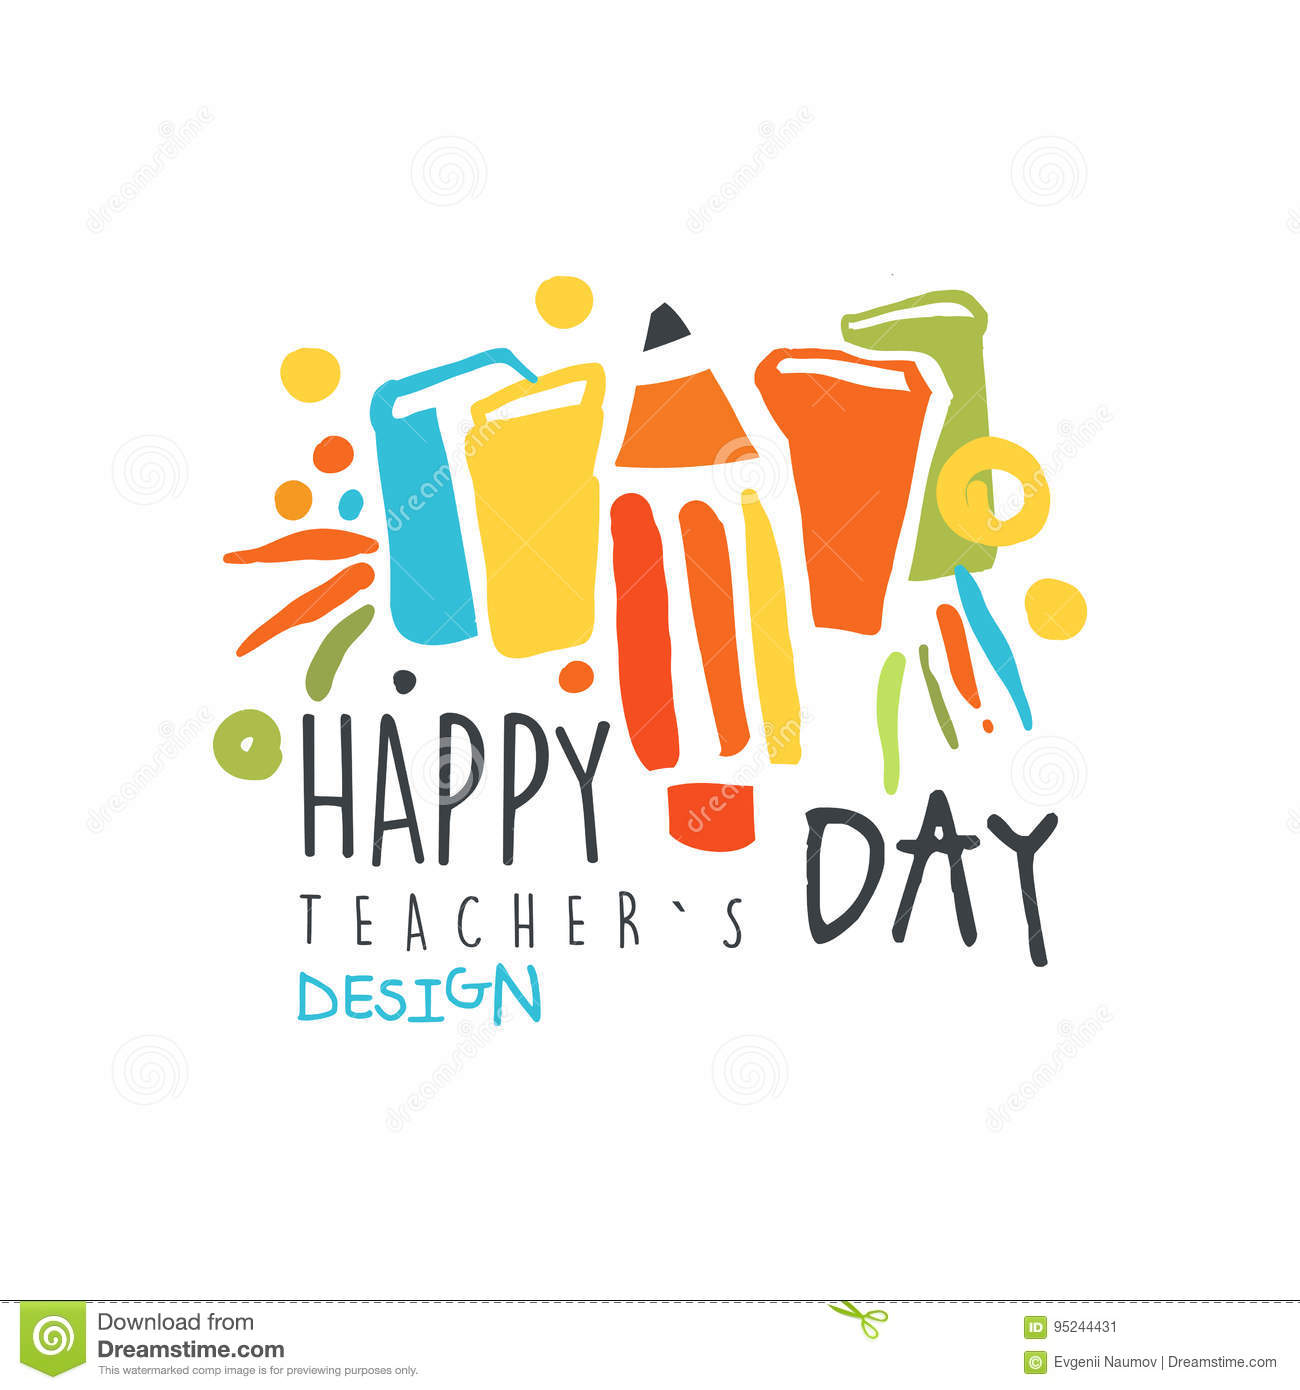 Happy Teachers Day label design, back to school logo graphic template colorful hand drawn vector Illustration